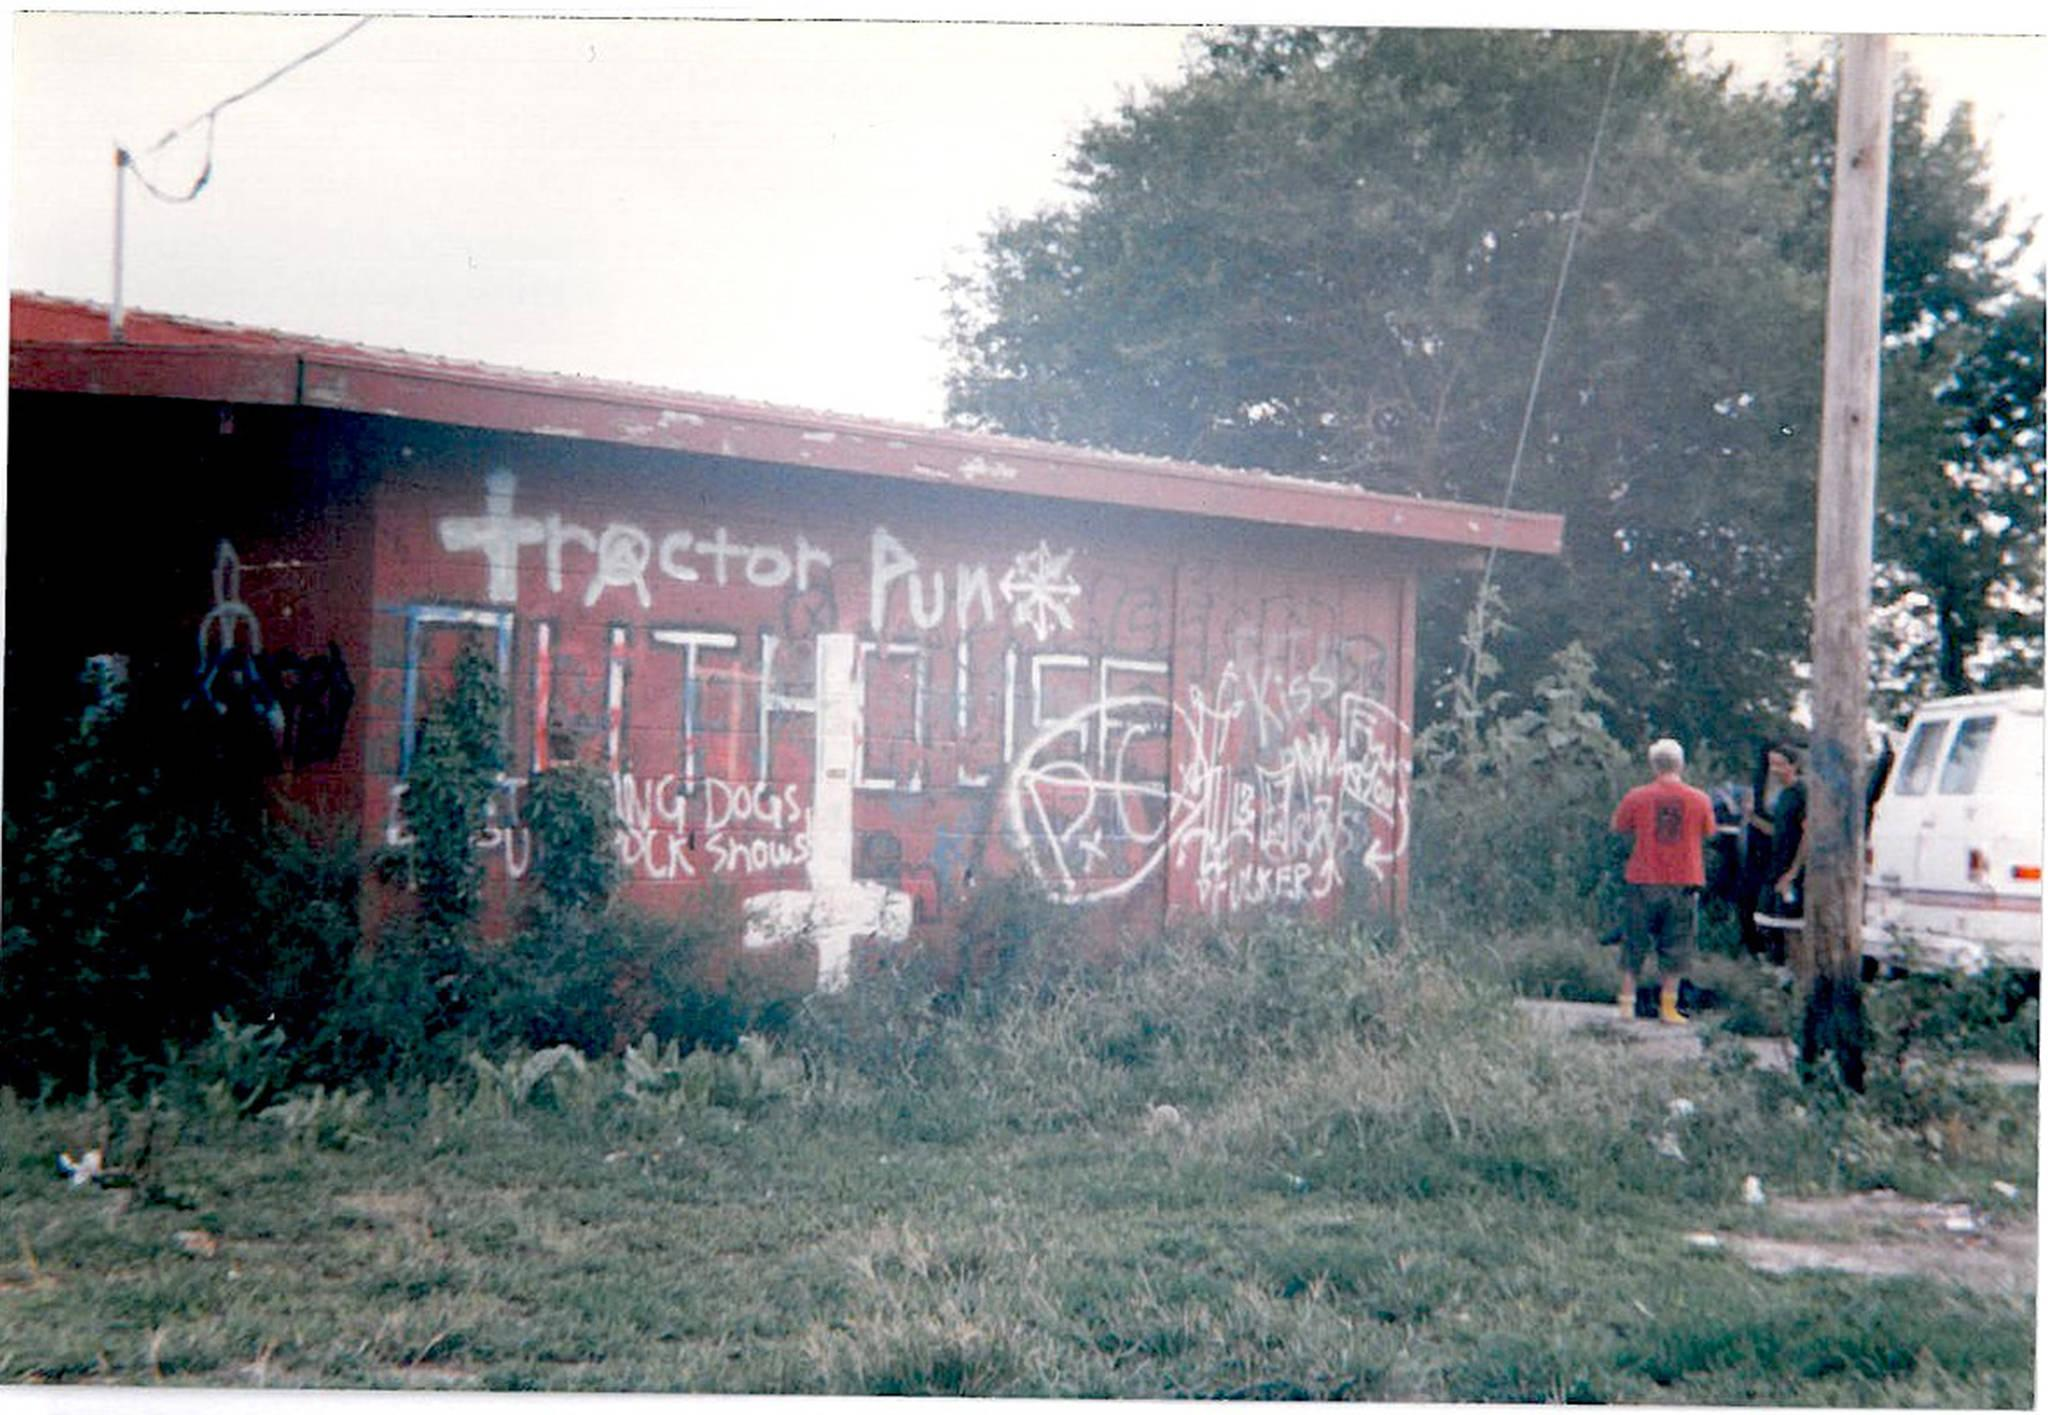 Before it was painted over in the early 90s, the inside and outside of the building were covered with graffiti.